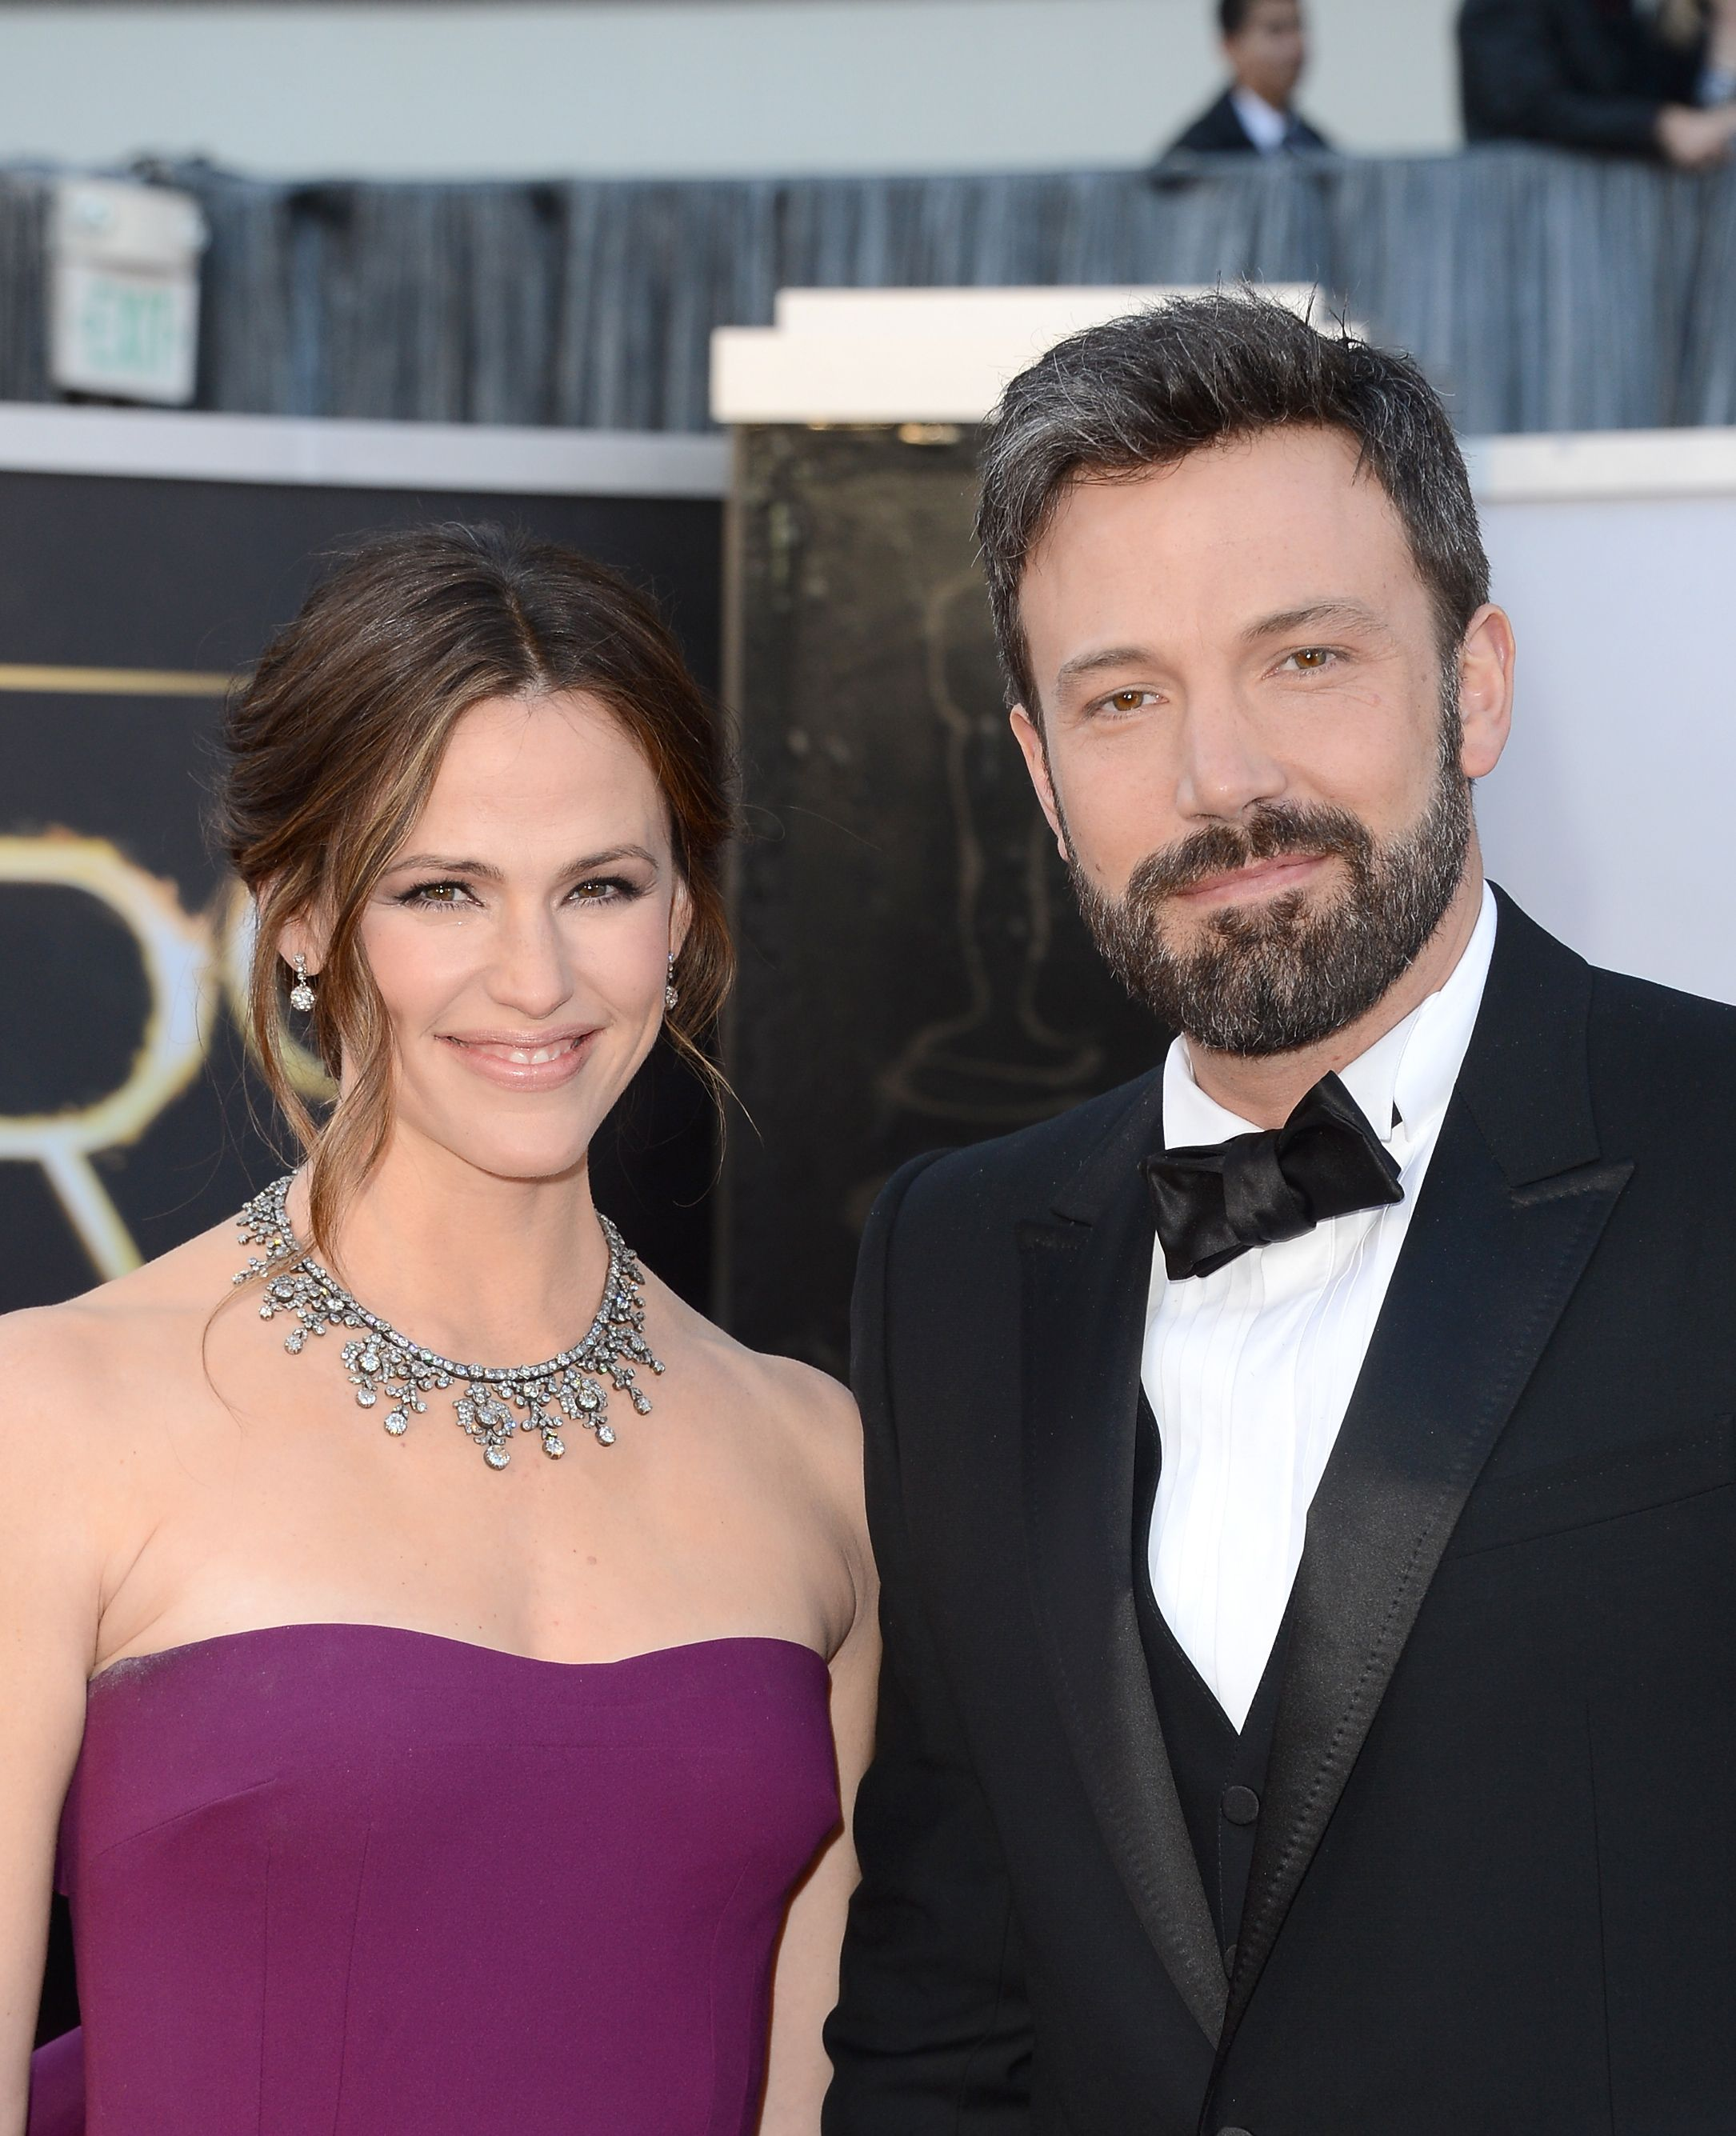 Jennifer Garner and Ben Affleck arrive at the Oscars at Hollywood & Highland Center on February 24, 2013. | Photo: Getty Images